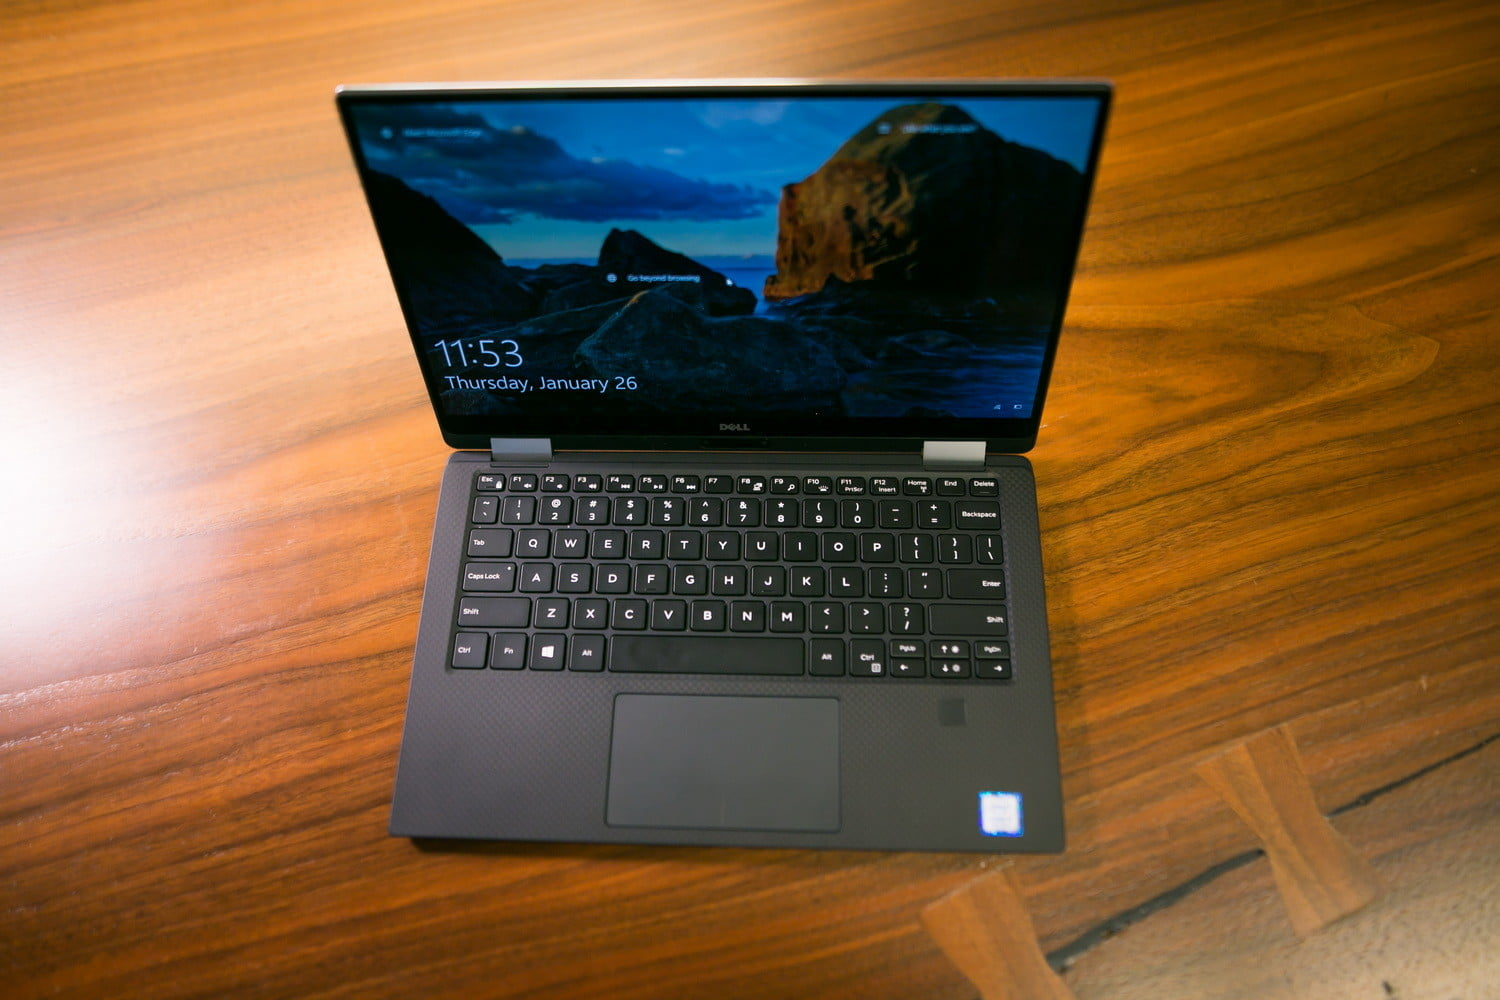 Which Laptop Brand is Better: Dell or HP?